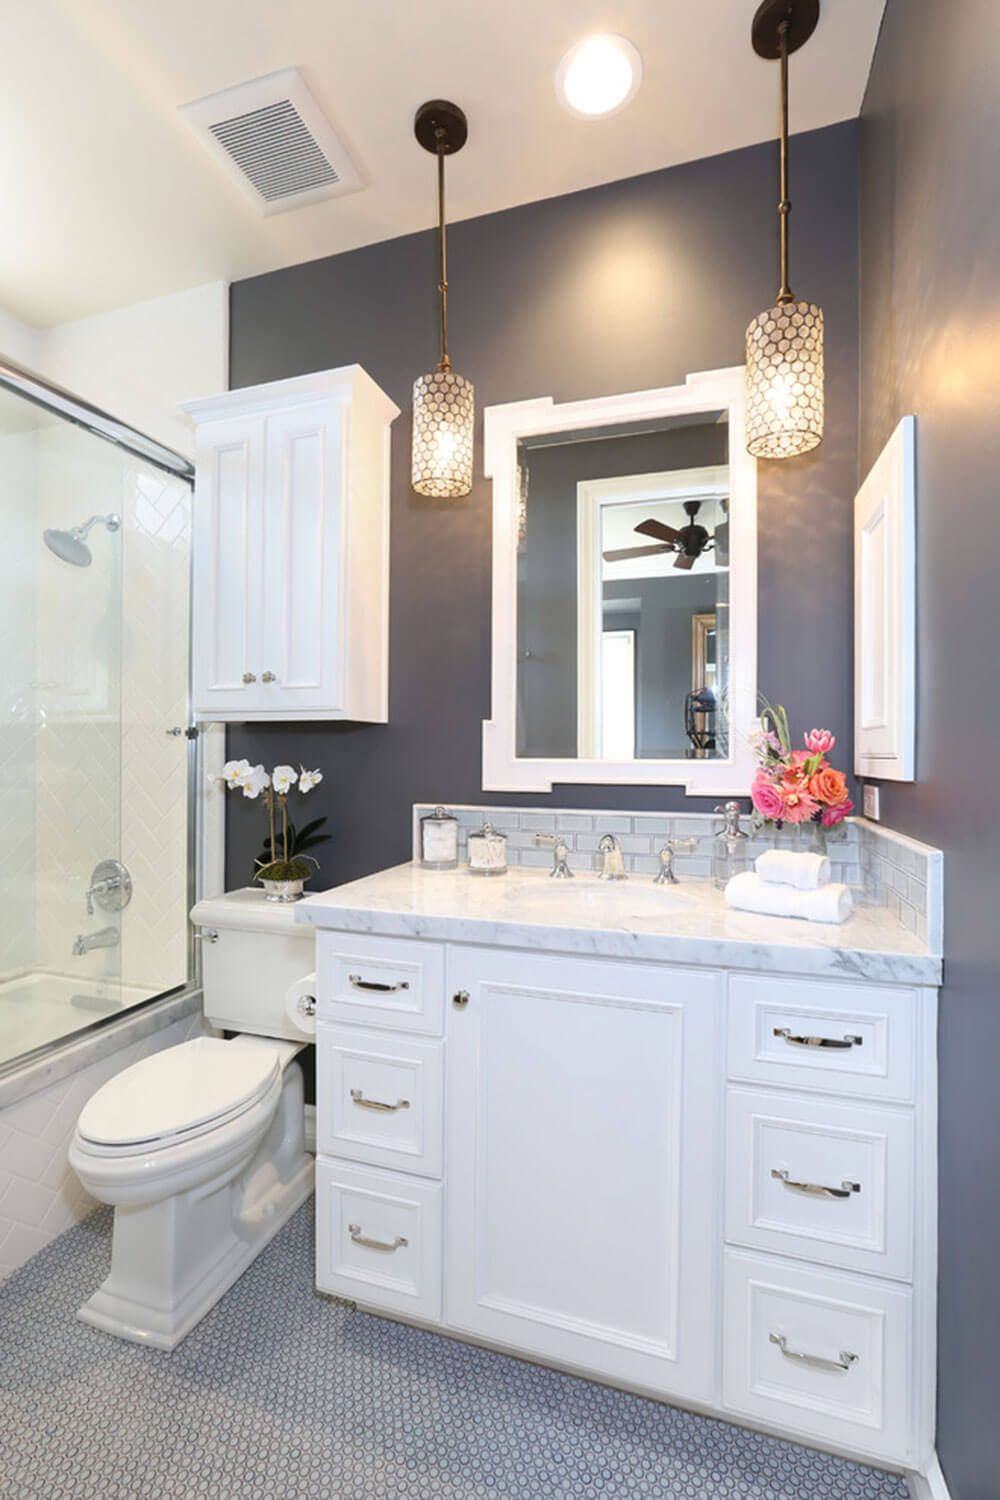 Charmant Uncluttered Color Scheme In Dark Gray And White. Downstairs BathroomGray Bathroom  DecorBathroom ...